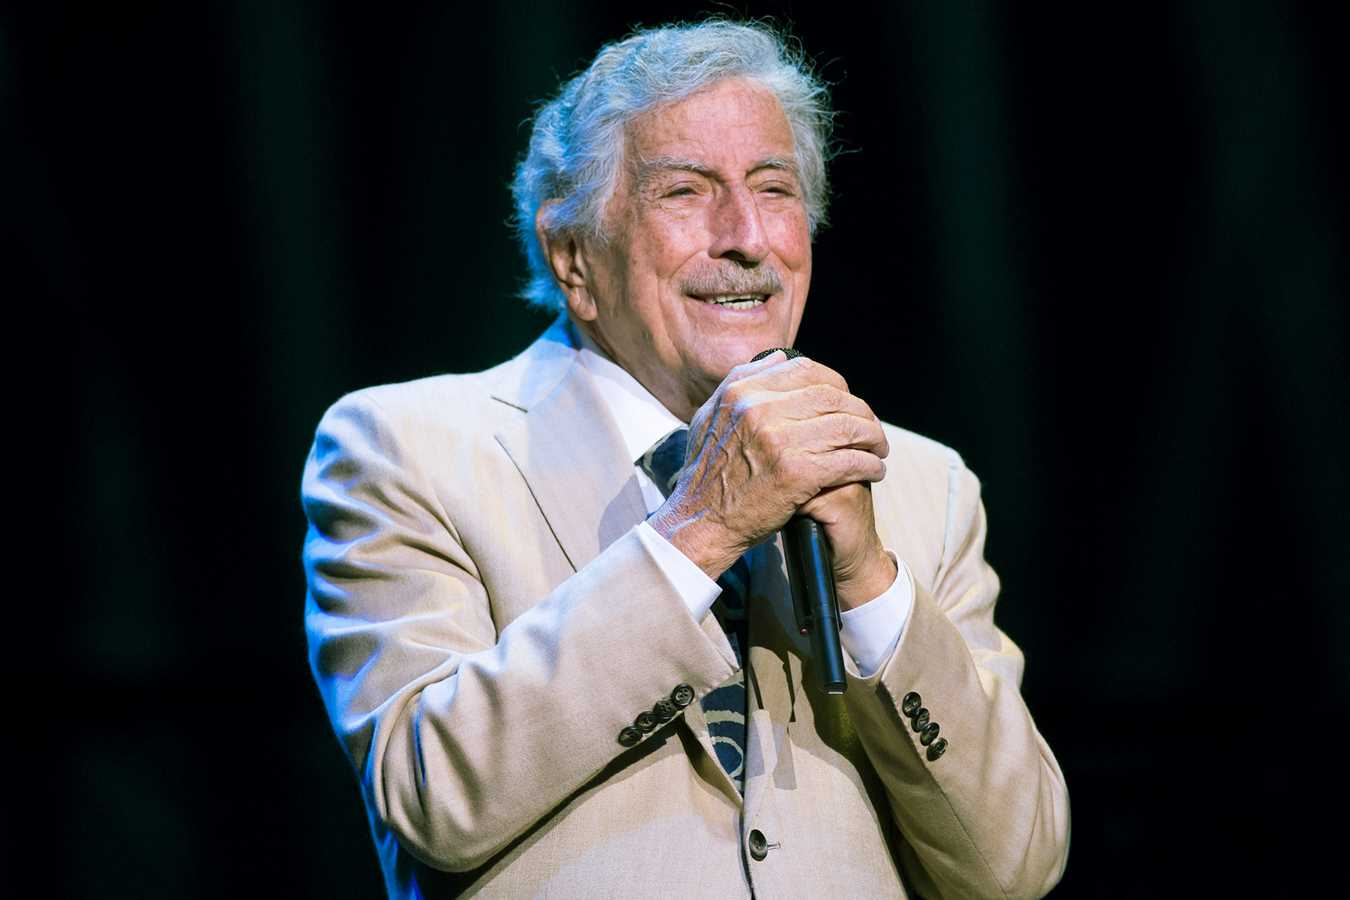 Tony Bennett Cancels Multiple Shows and Is Advised Not to Travel After Contracting Virus